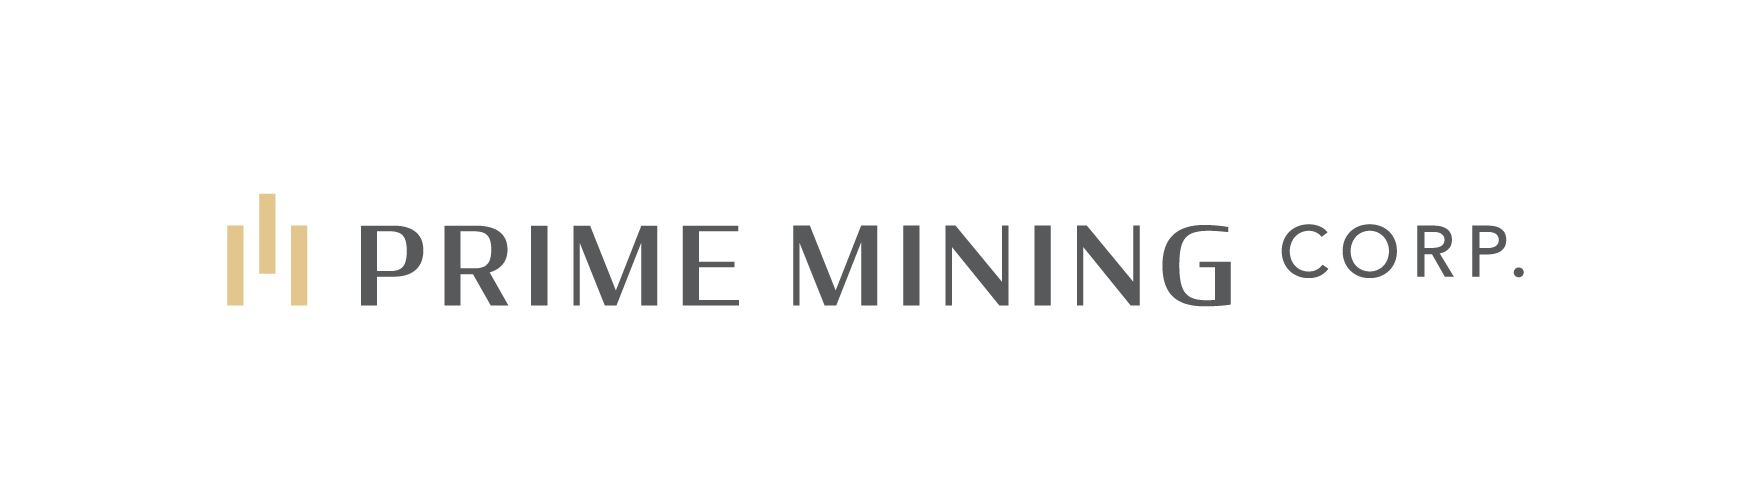 Prime Mining Makes Payment to Vista Gold Corp.